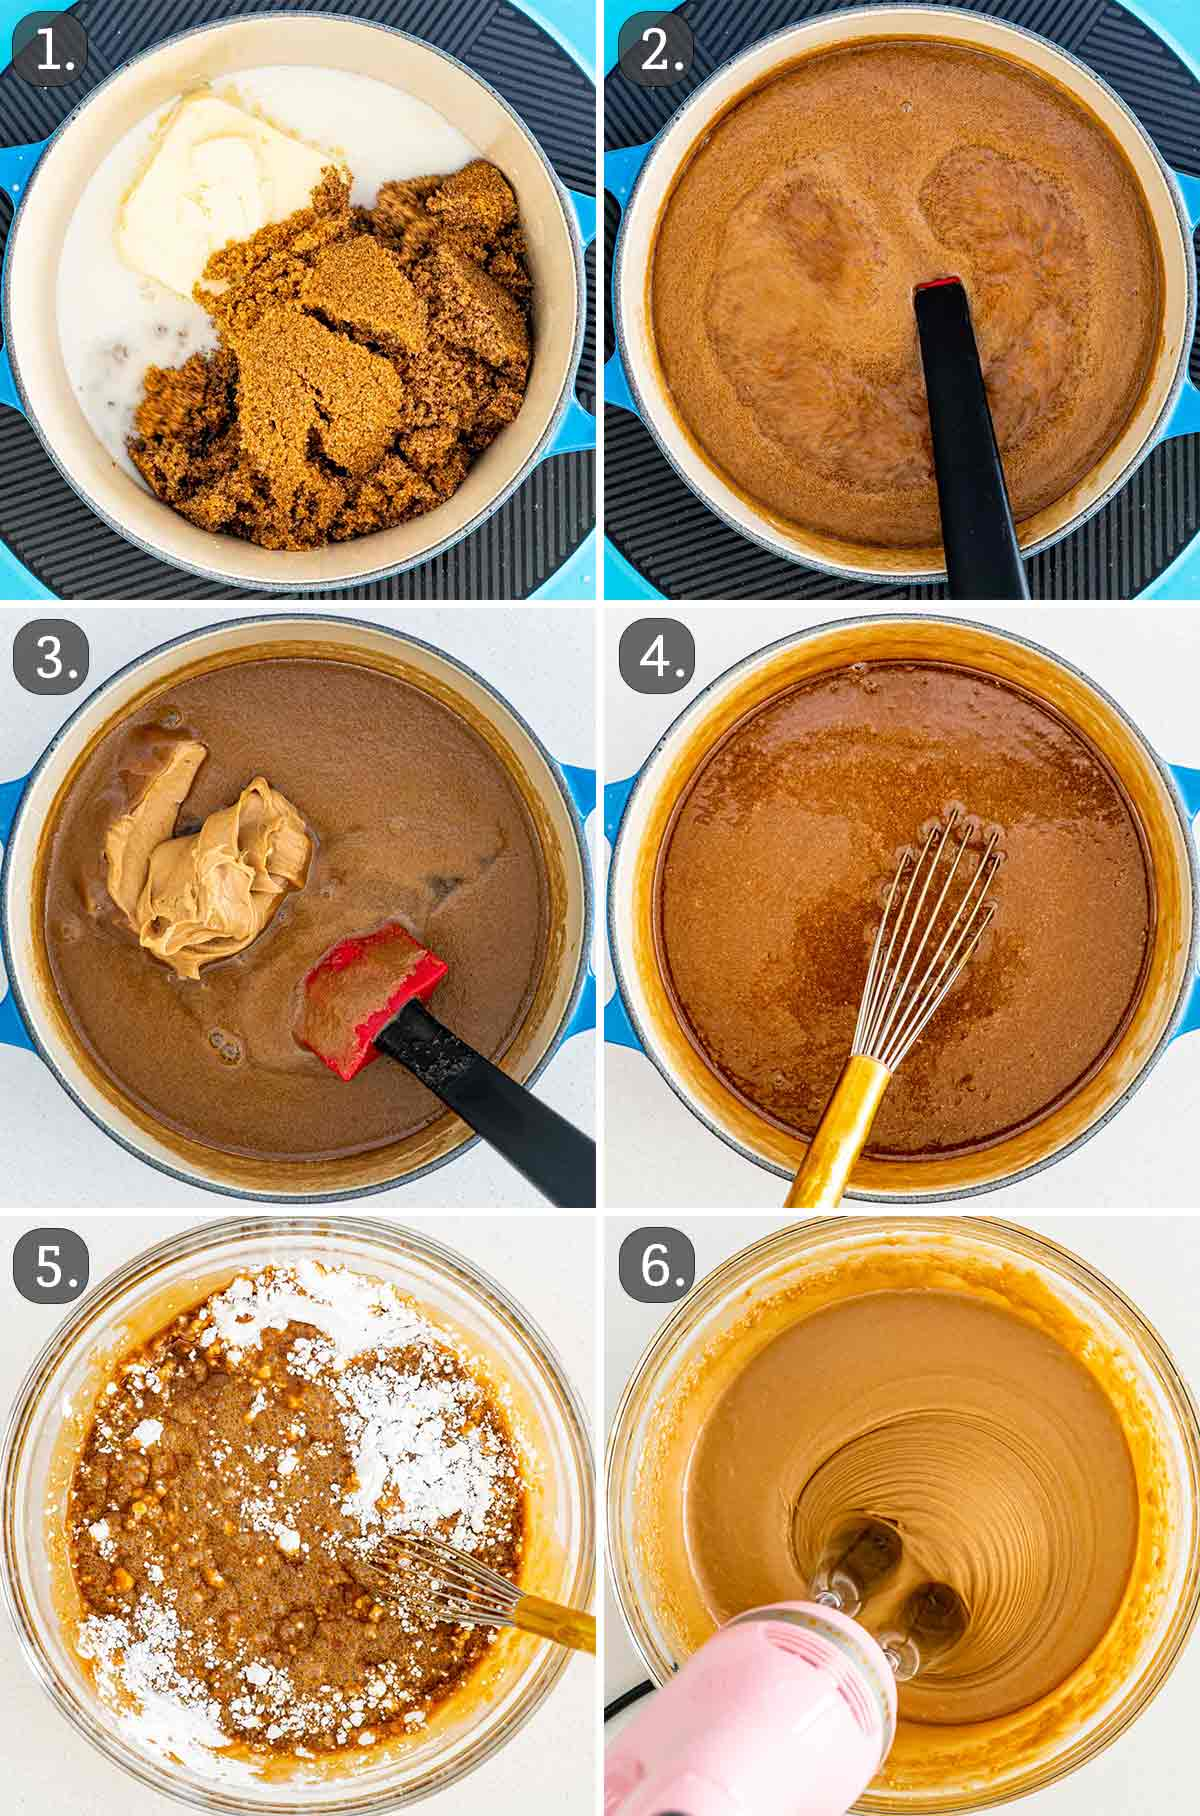 process shots showing how to make peanut butter fudge.